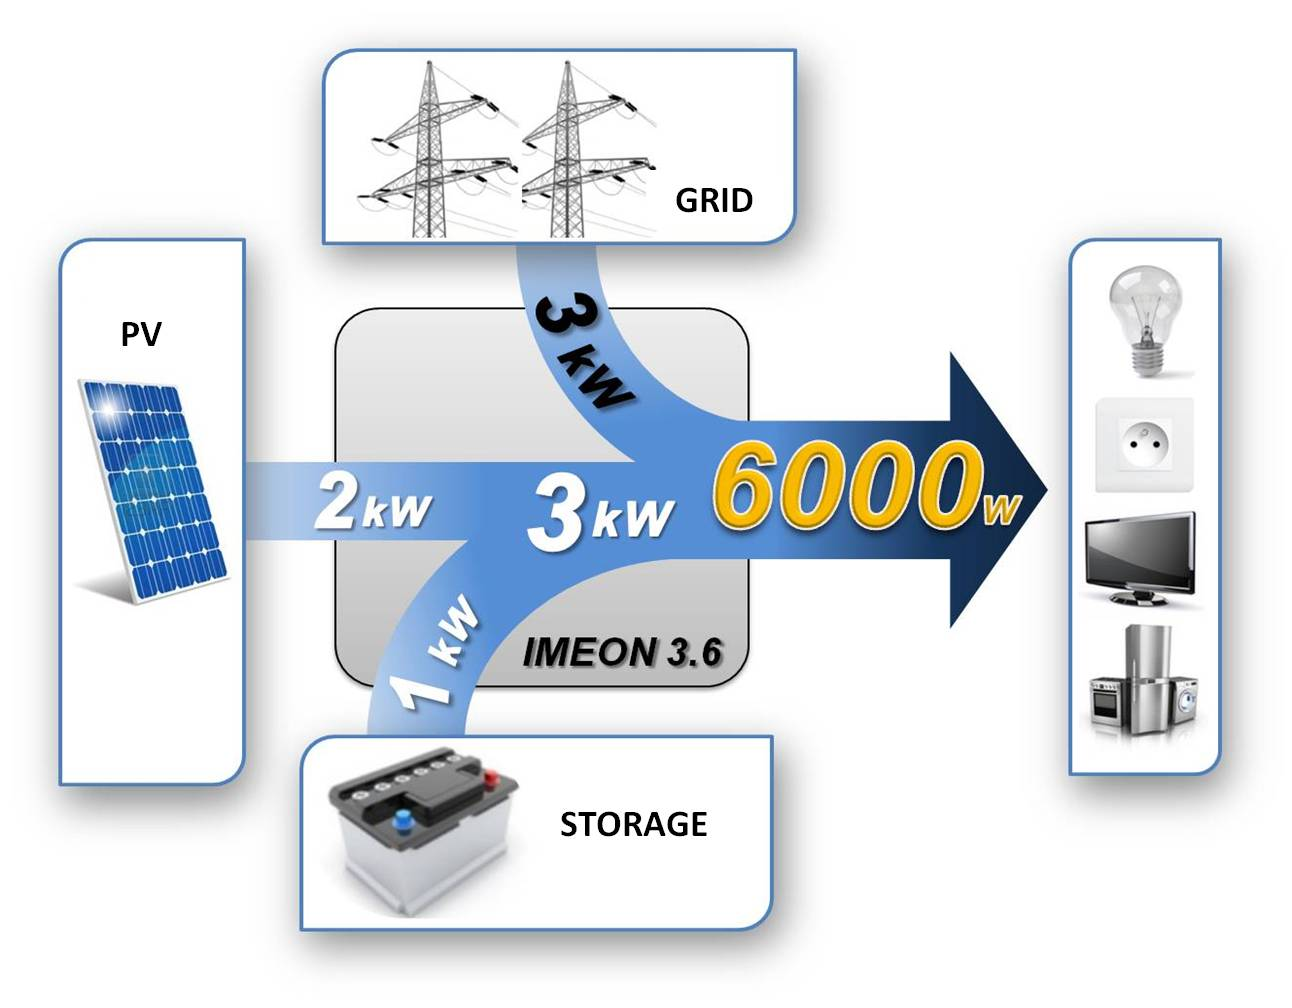 IMEON ENERGY Couplage Multiphase onduleur smart grid intelligent autoconsommation solar self use